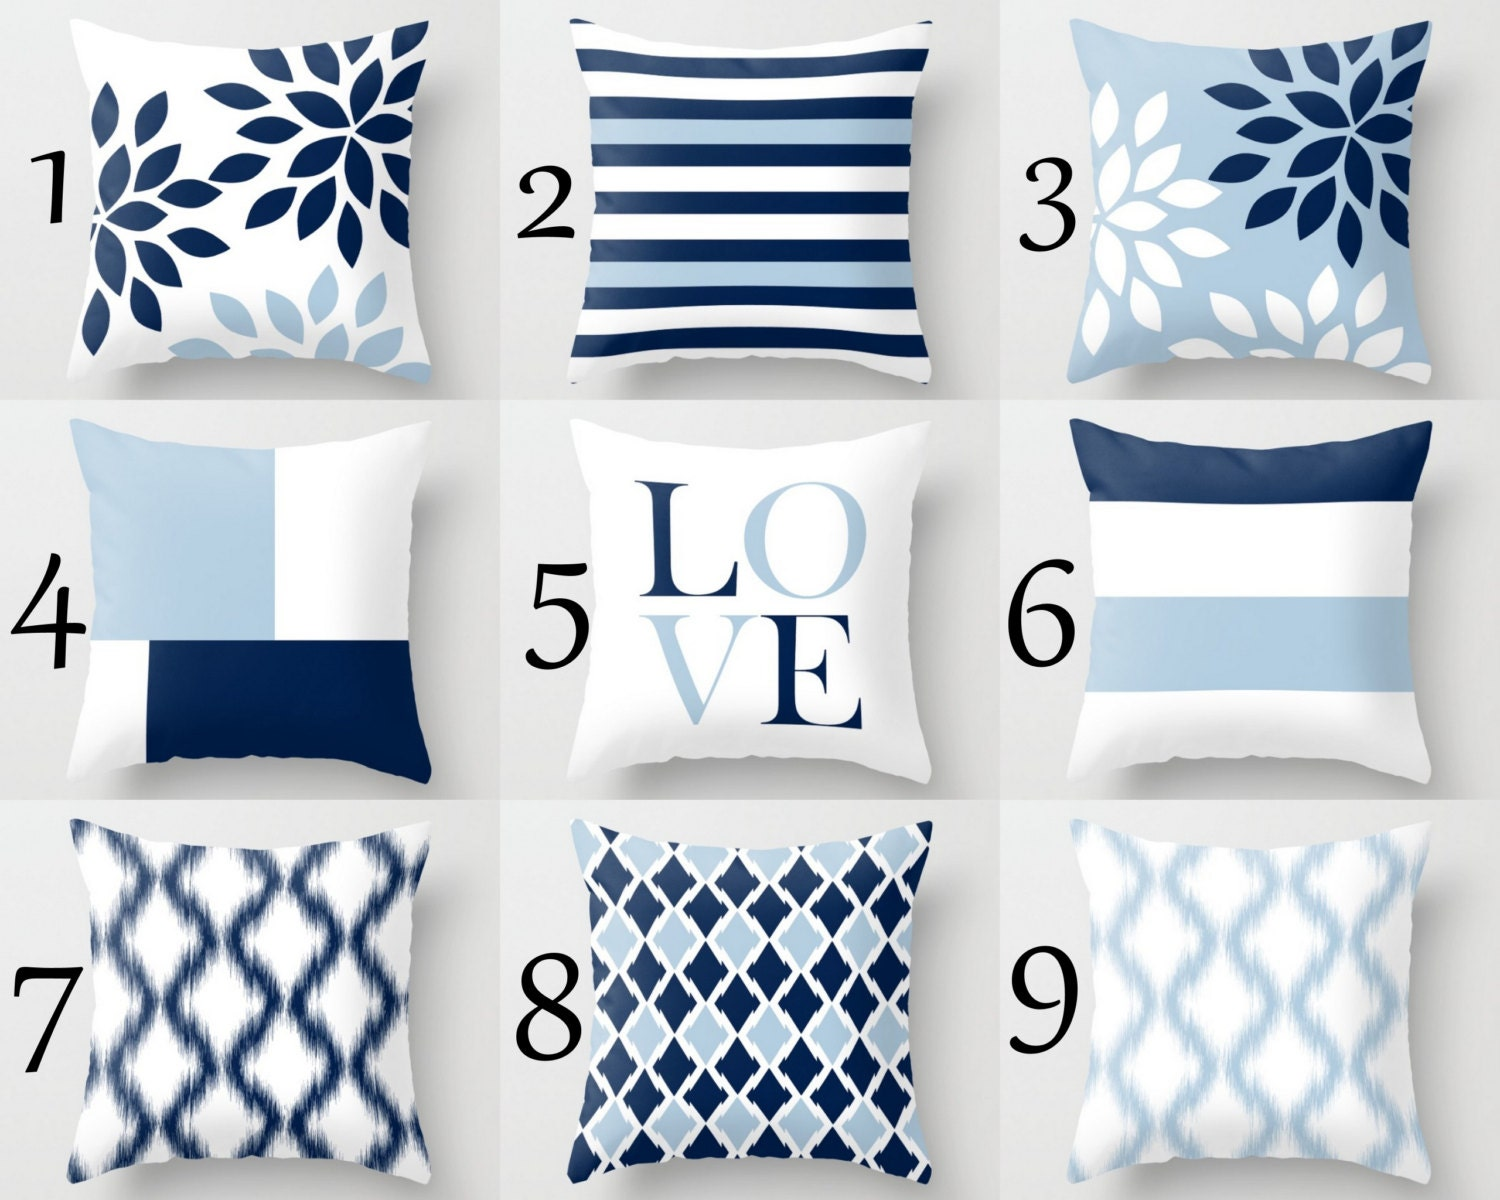 throw pillow covers light blue white navy blue pillow - details throw pillow cover designs in light blue